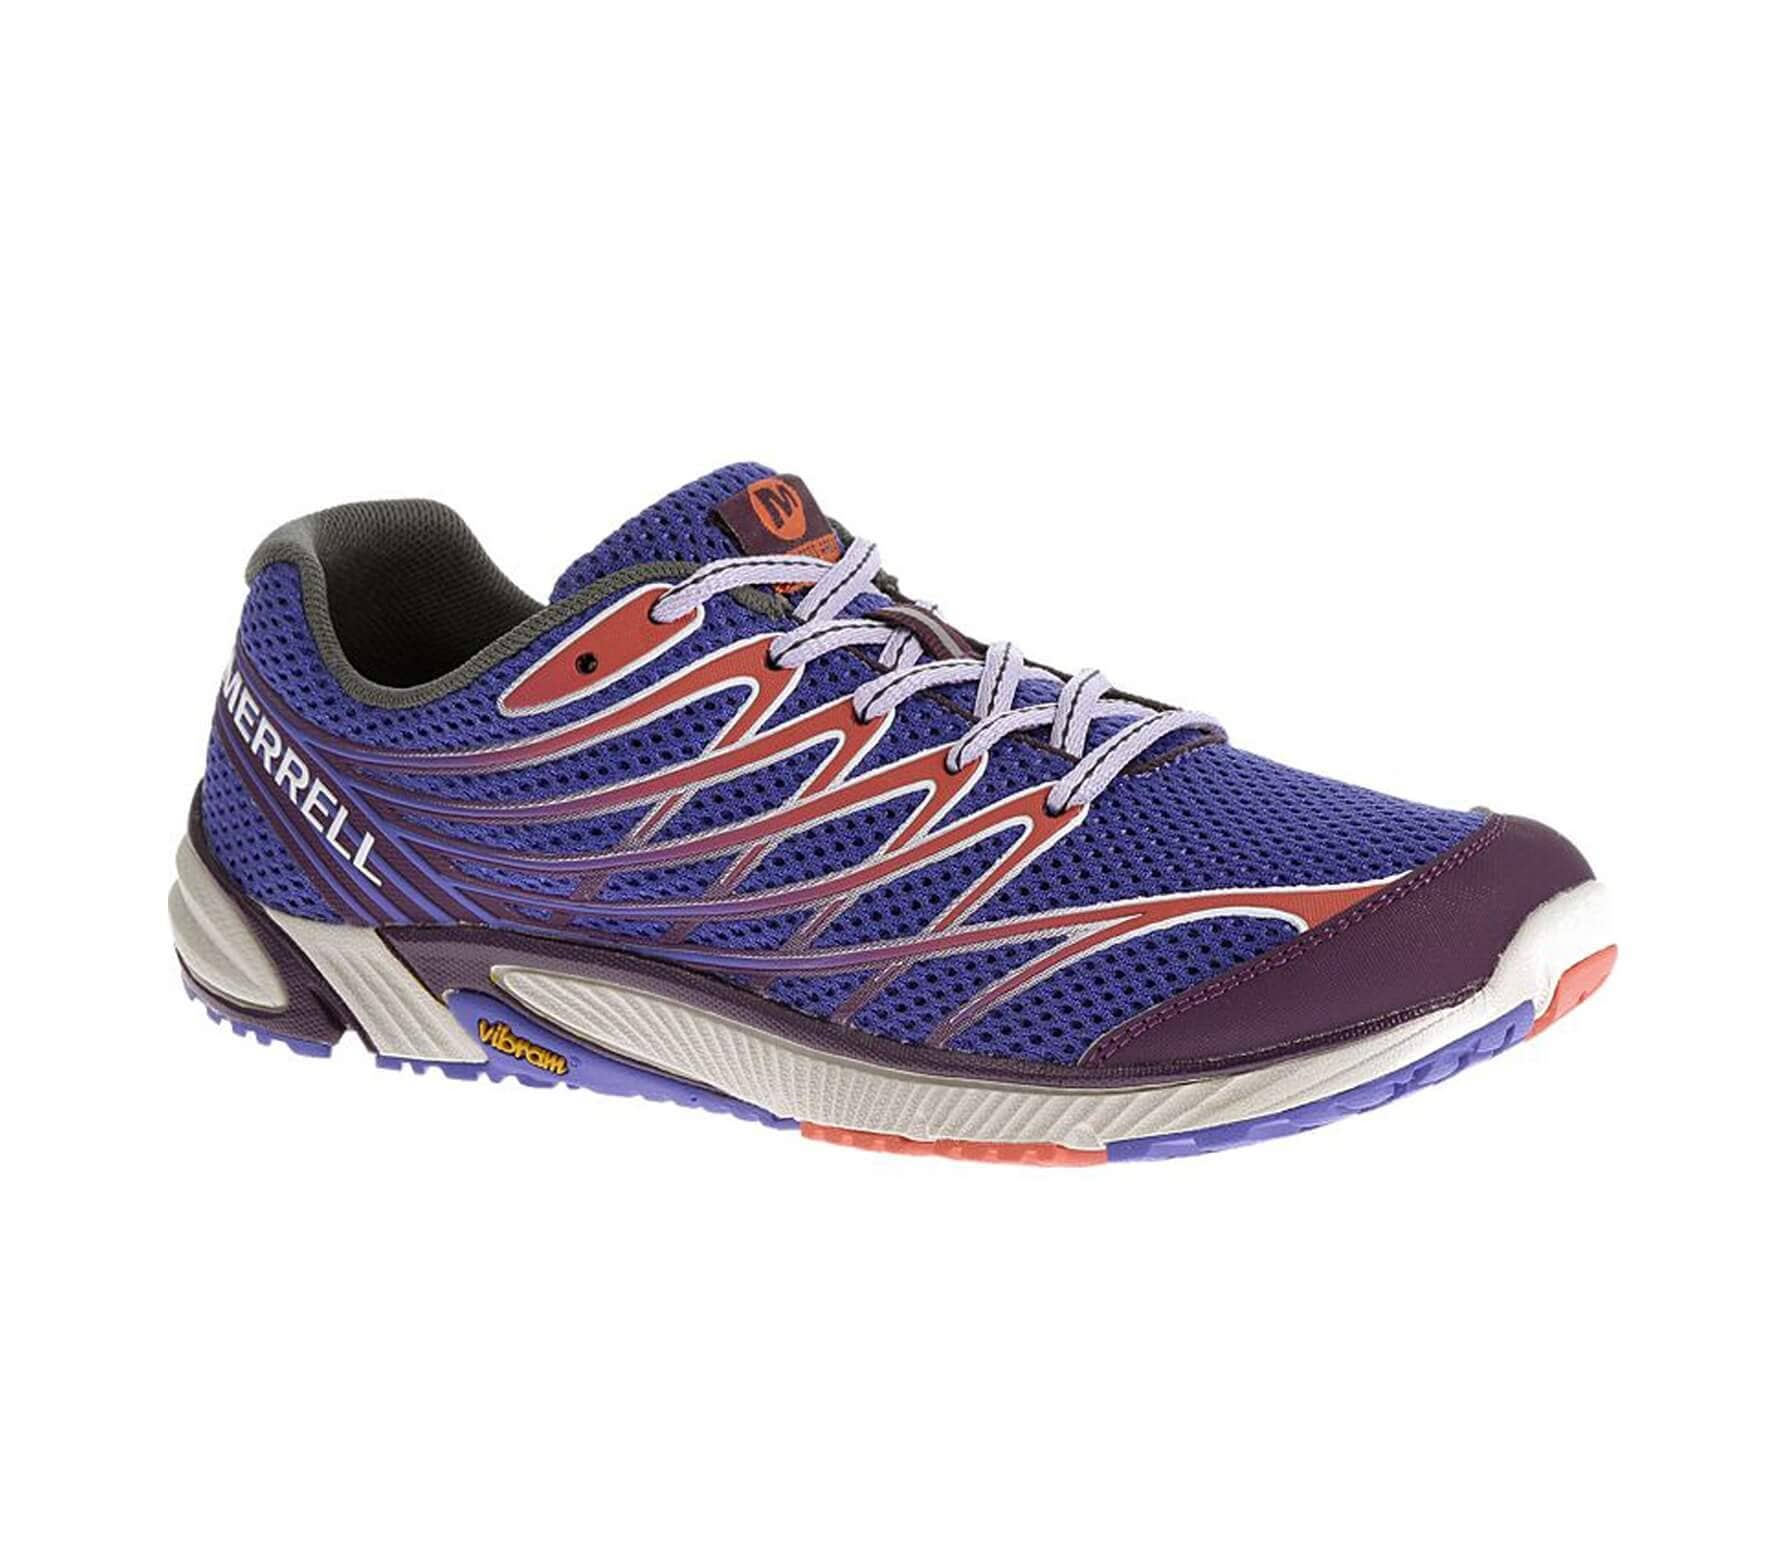 Barefoot Running Shoes For Cycling